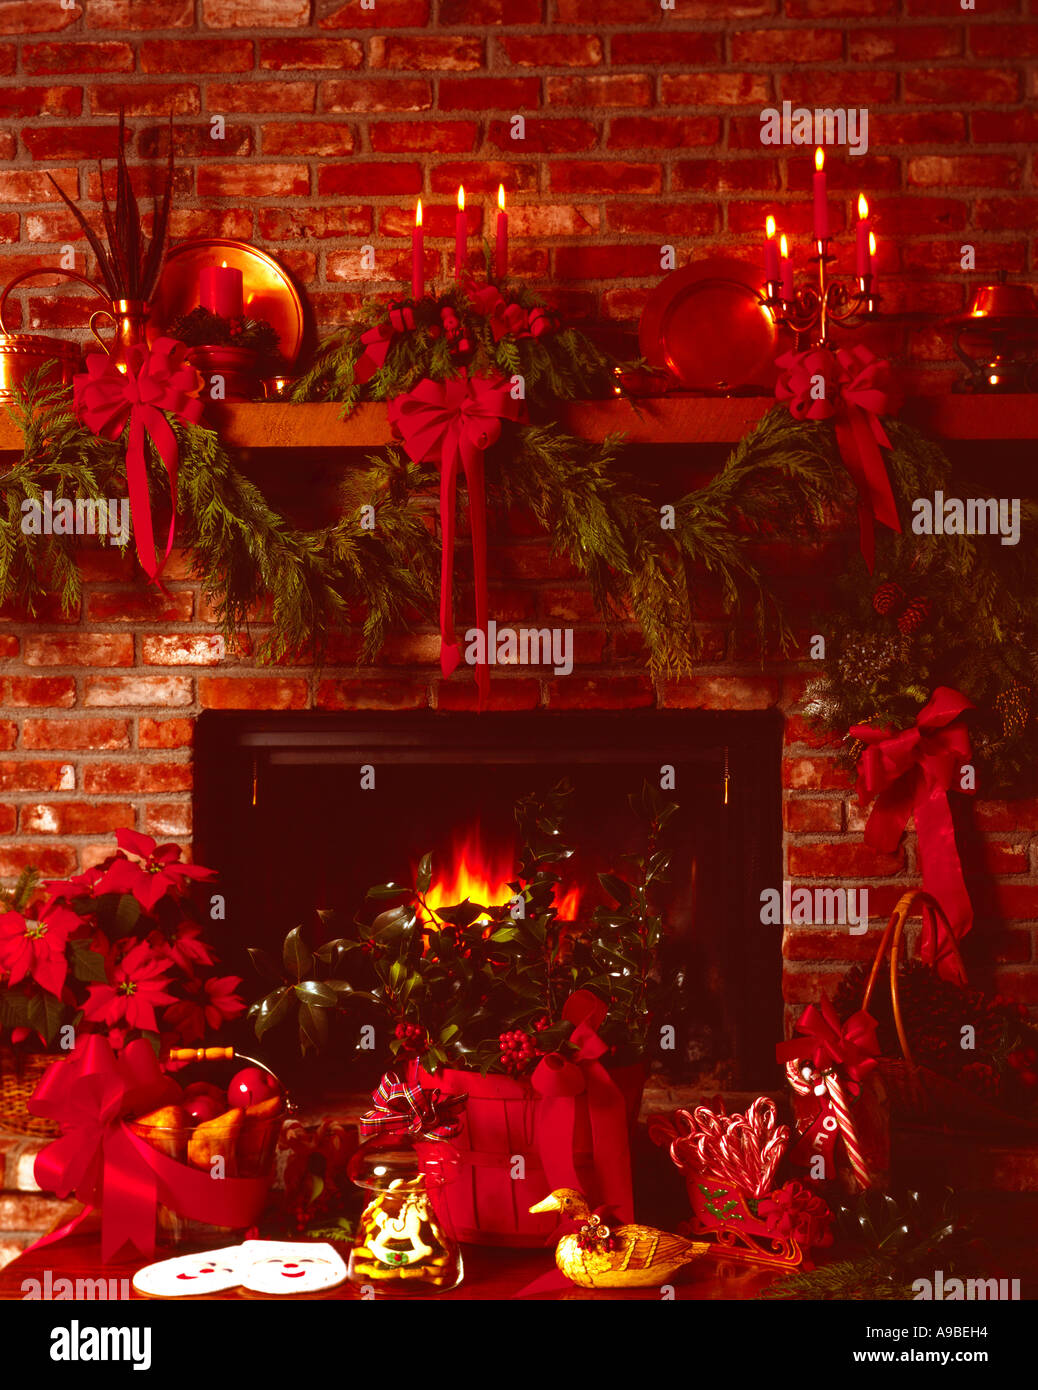 christmas fireplace still life with blazing hearth fruit baskets